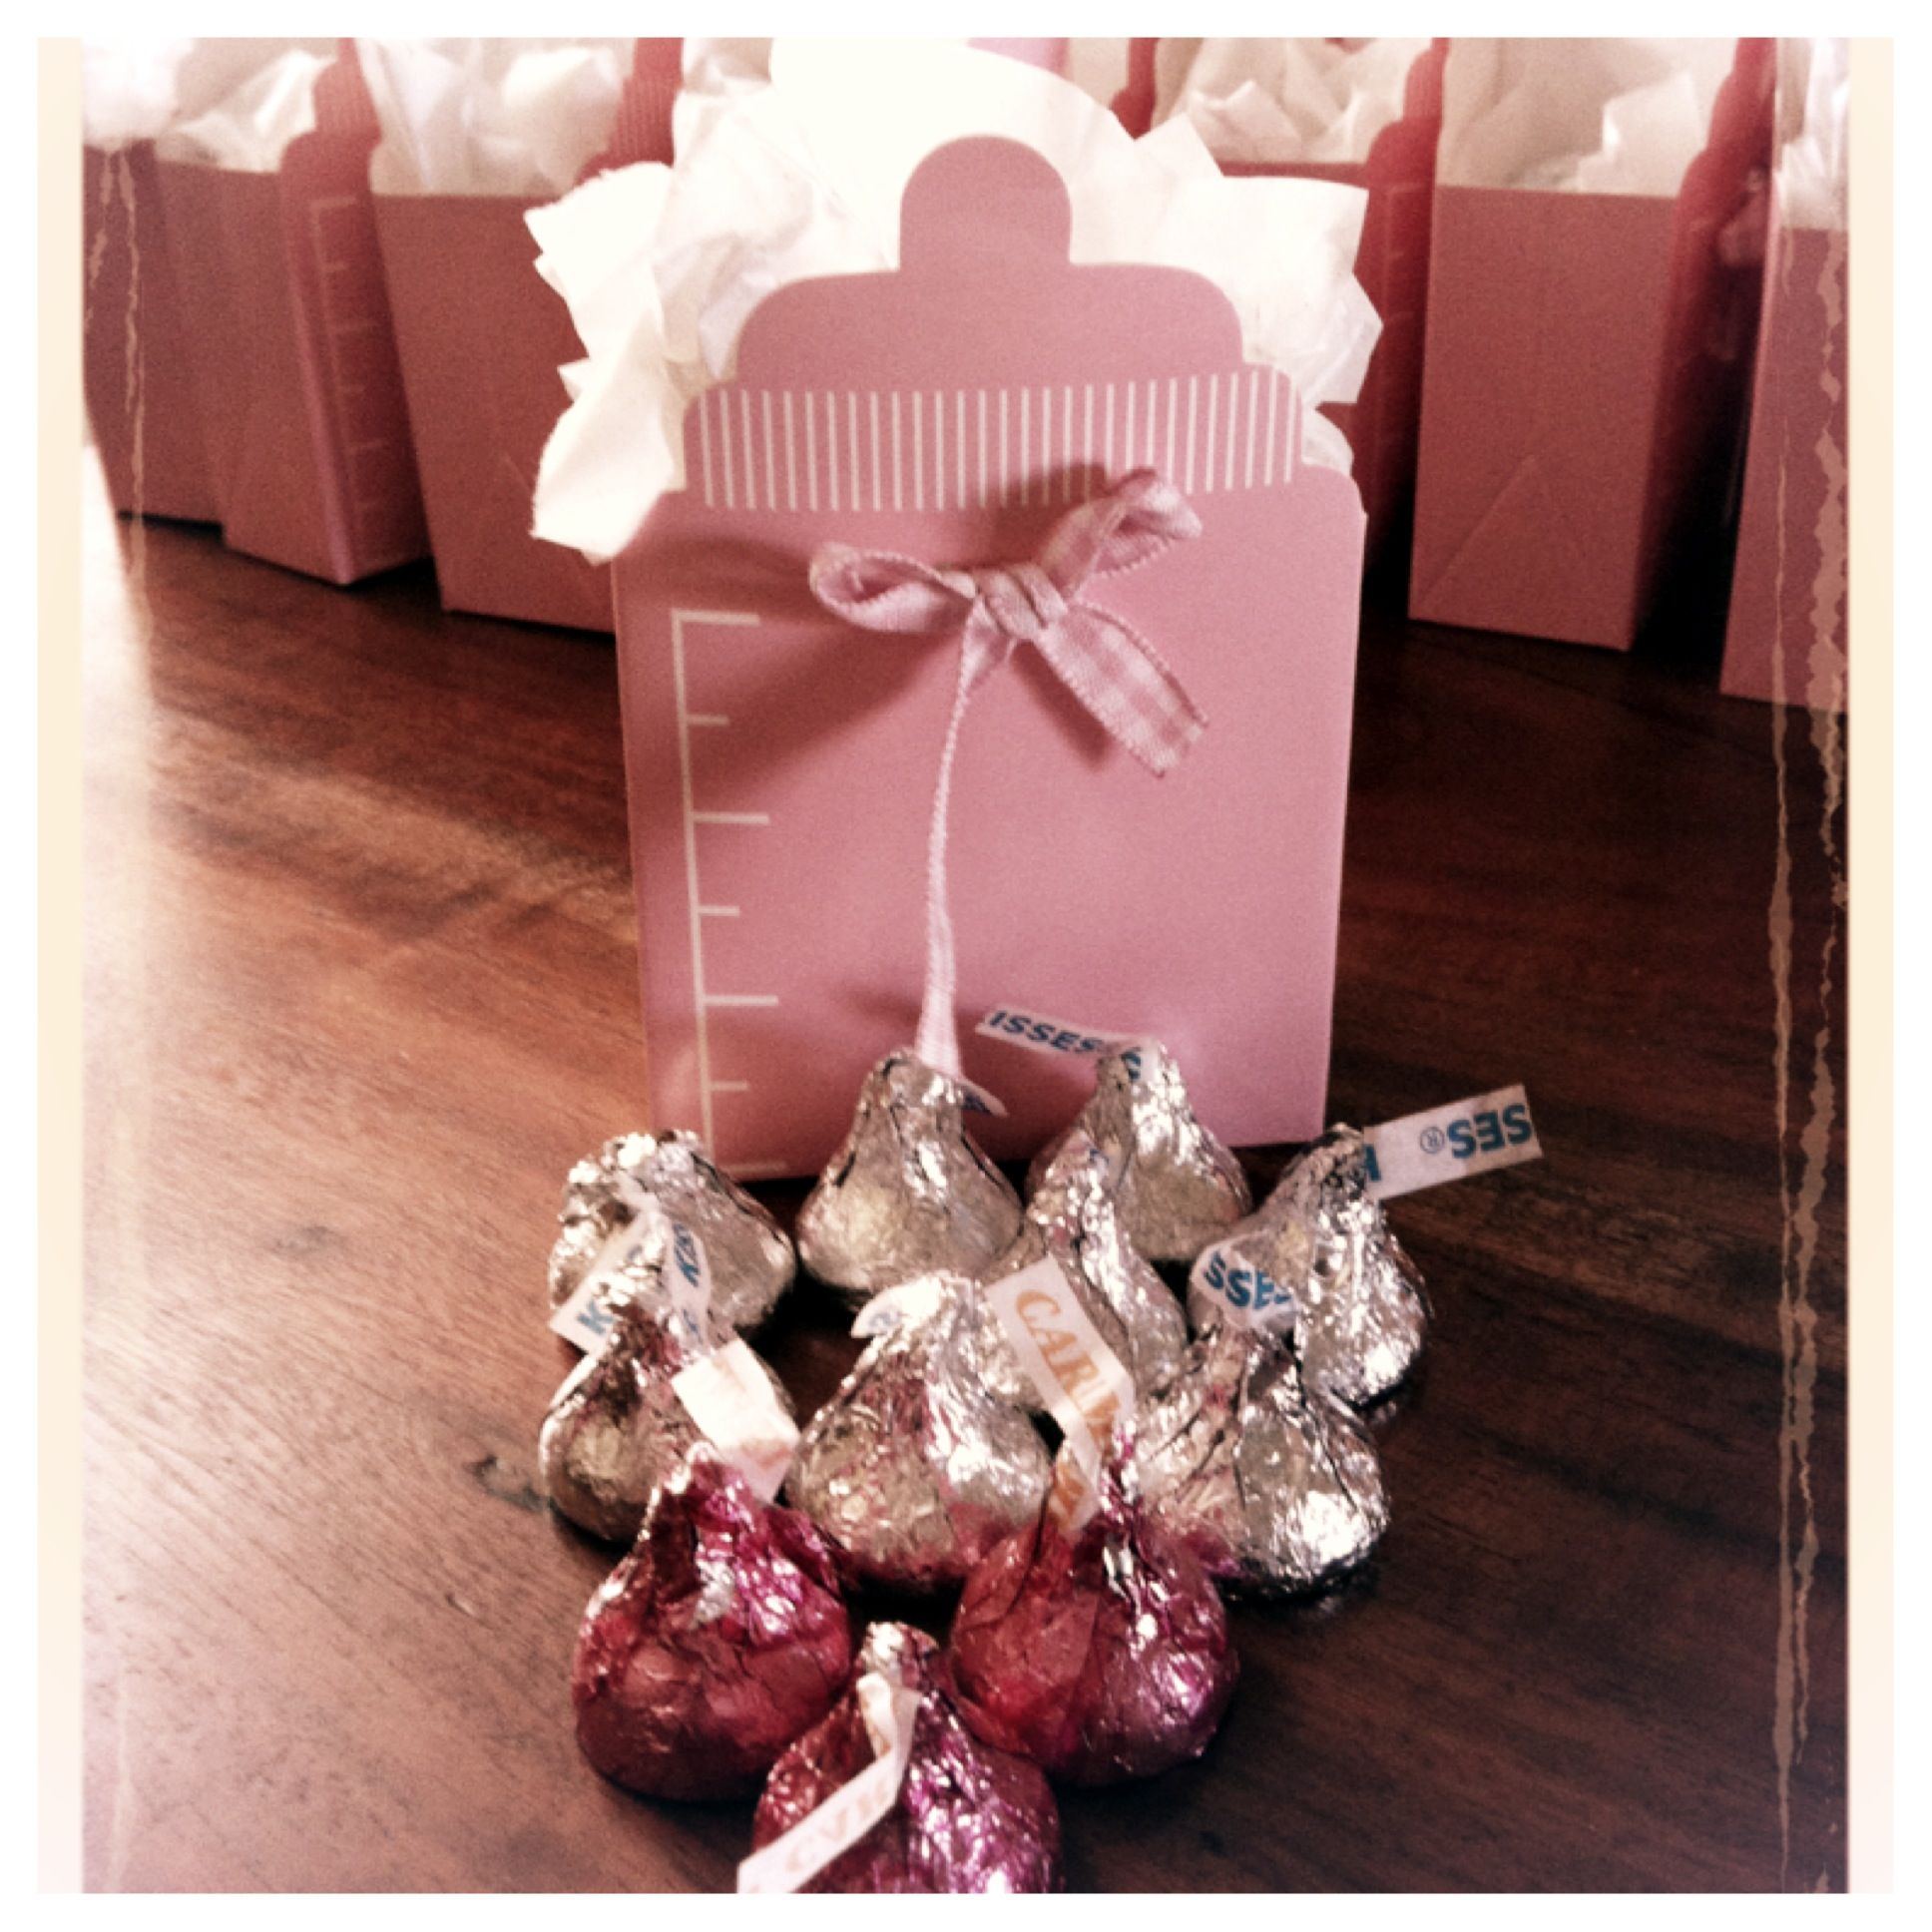 Party Favors - Stocked up on pink hershey kisses during valentines ...